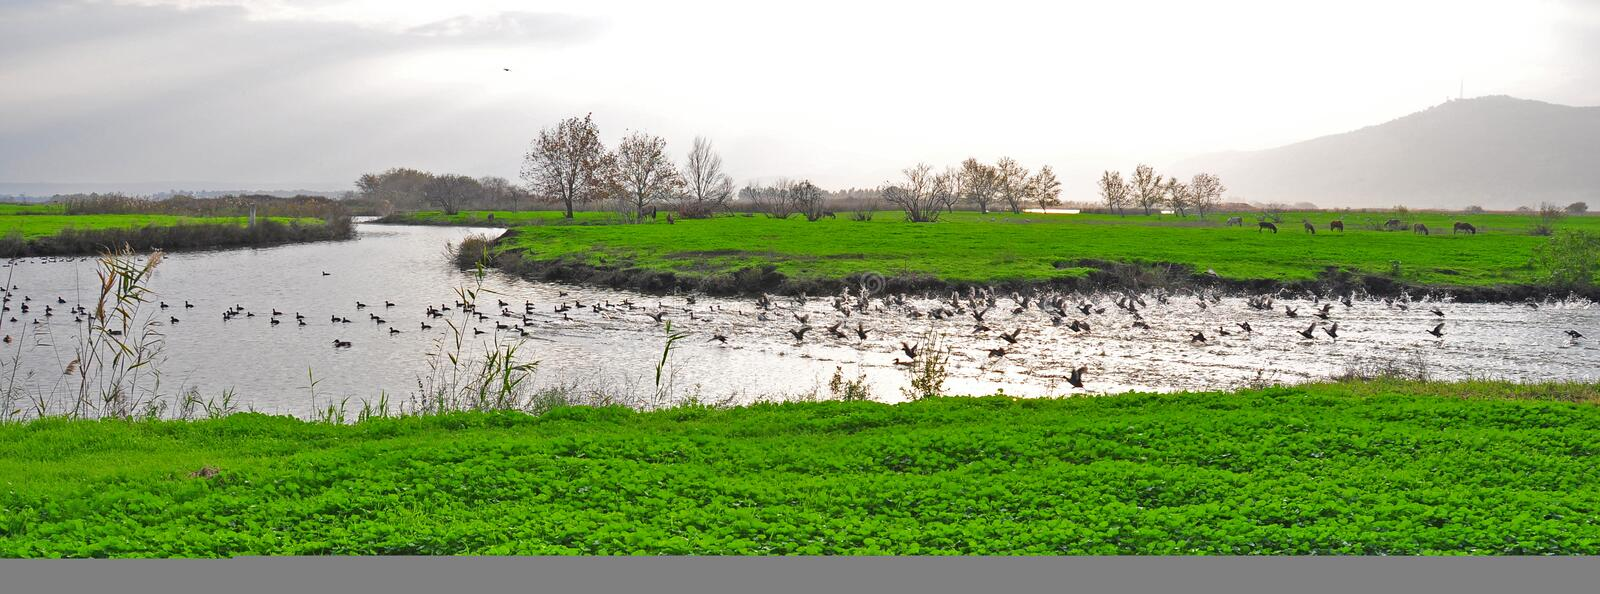 Ducks in a river, Ahula, Israel stock photography